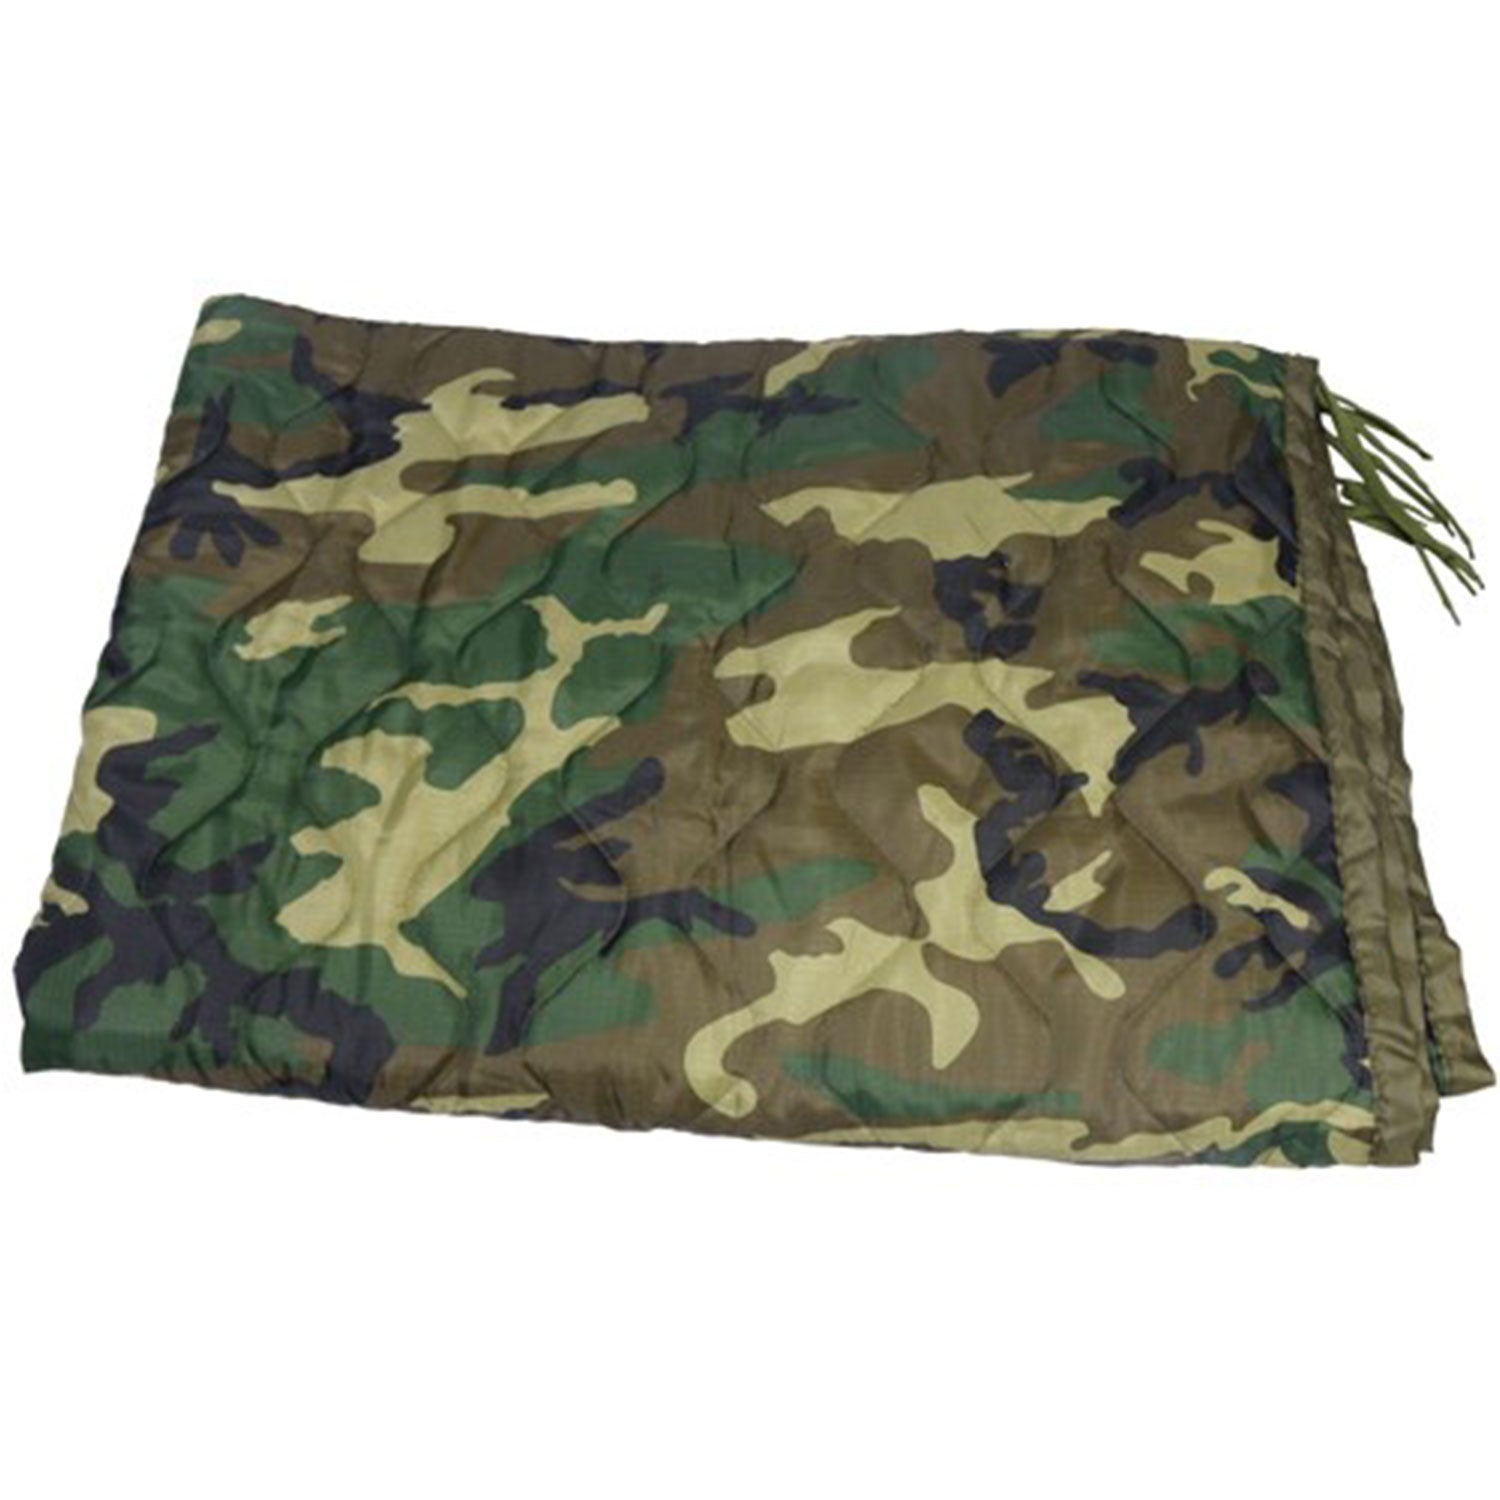 Woobie Blanket Poncho Liners - Multicam - Baby Size